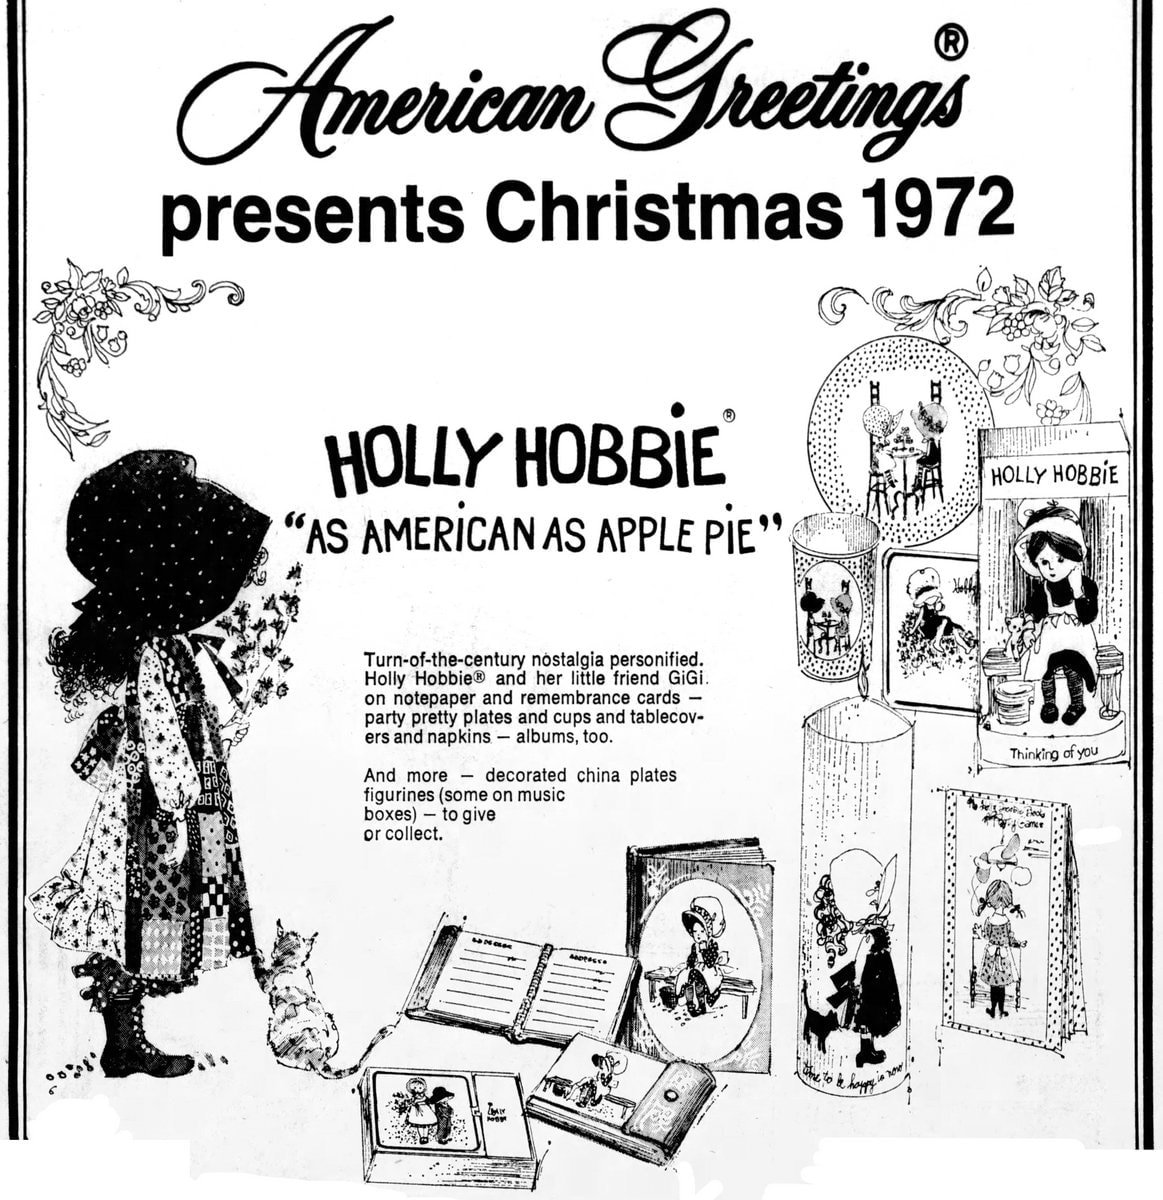 Holly Hobbie Christmas gifts (1972)